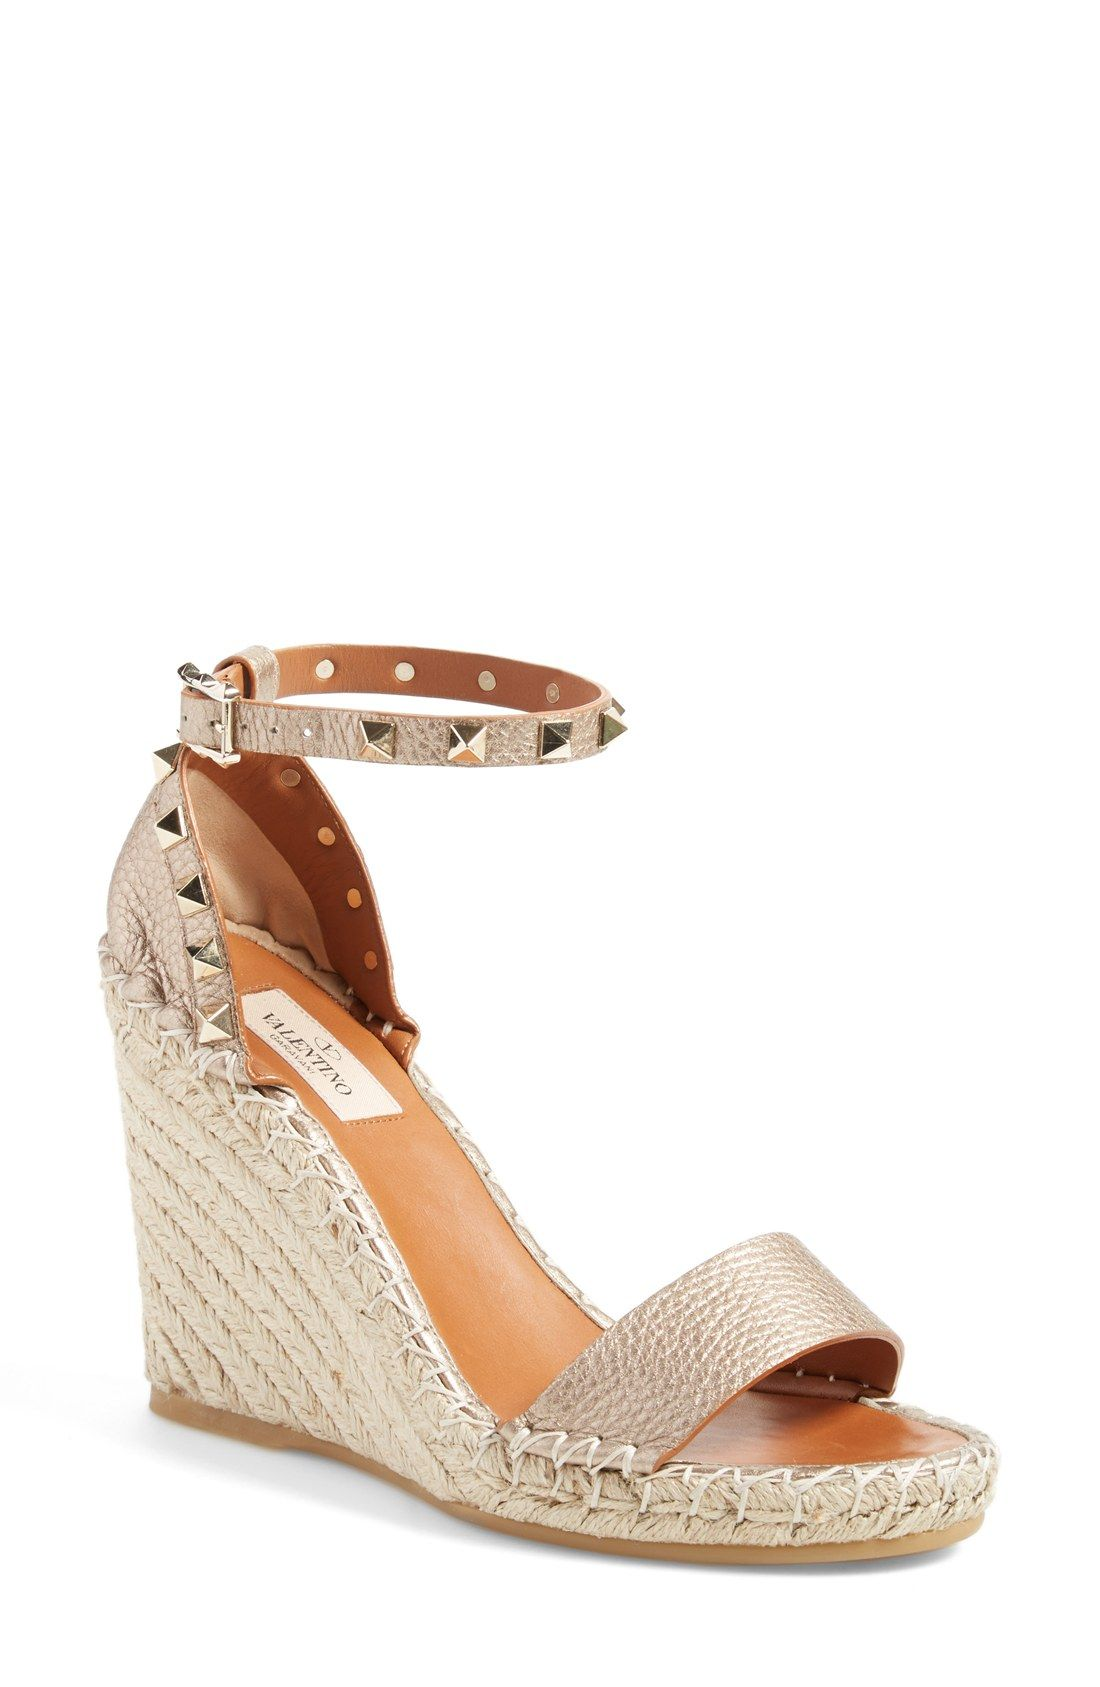 d7cb836d340 Crushing on these fabulous rockstud wedges for a stylish and edgy look.   nordstrom  nordstrom